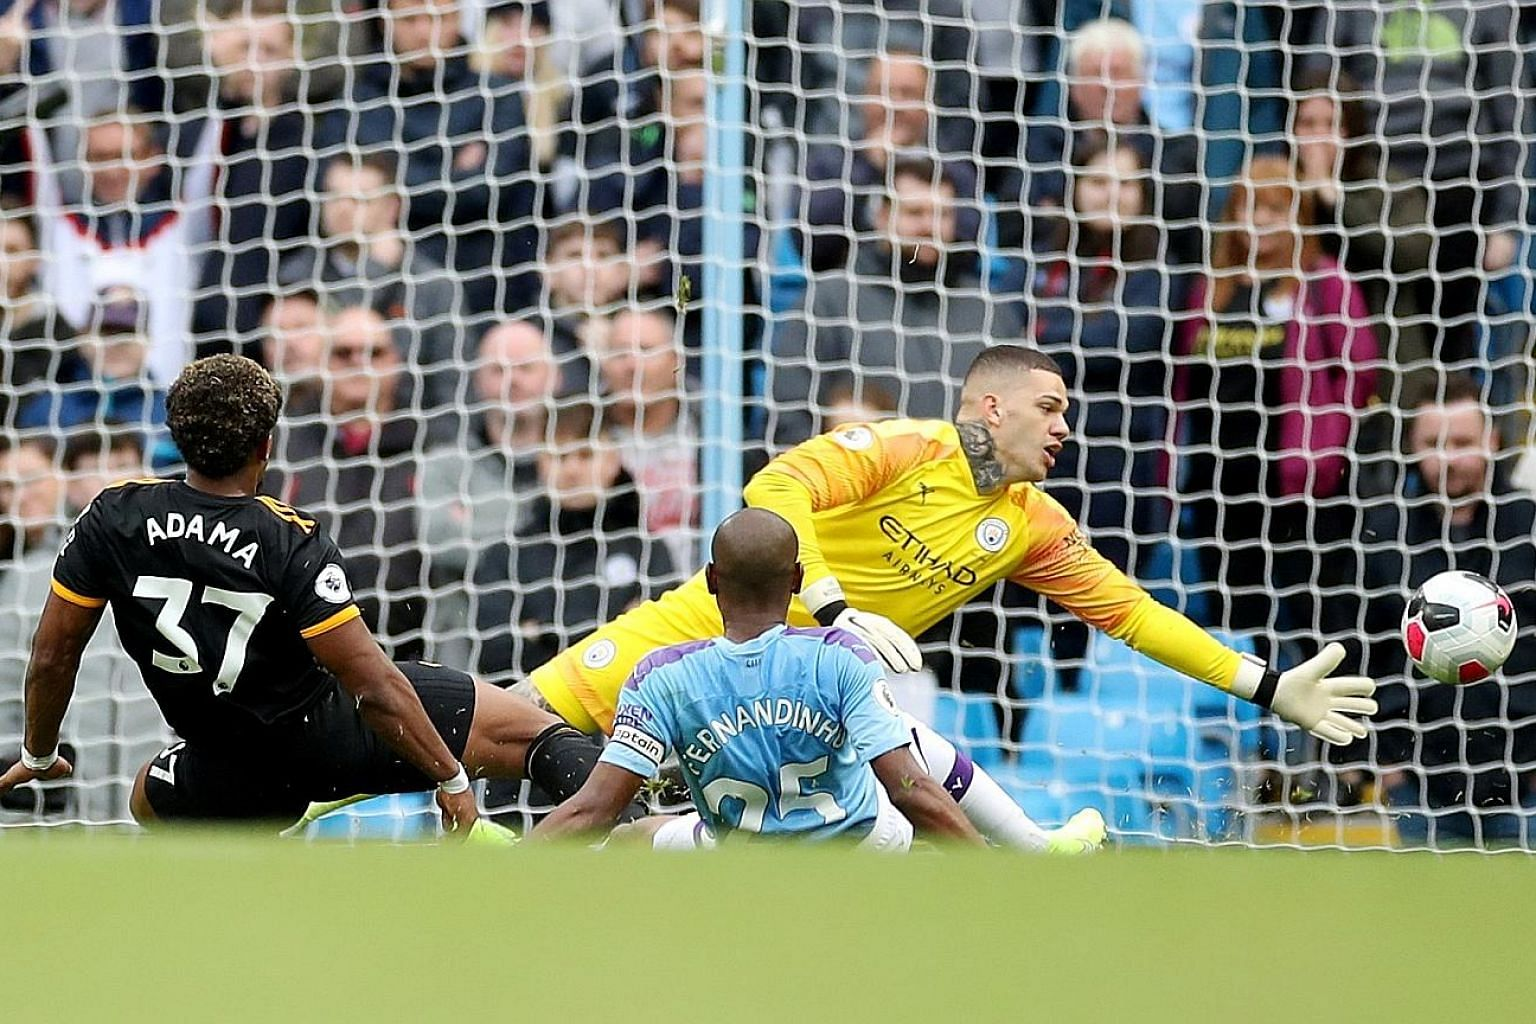 Wolves winger Adama Traore cooling slotting the ball past Manchester City goalkeeper Ederson in stoppage time. The 2-0 defeat was just the fourth time City have lost at the Etihad Stadium in 61 matches under Pep Guardiola.